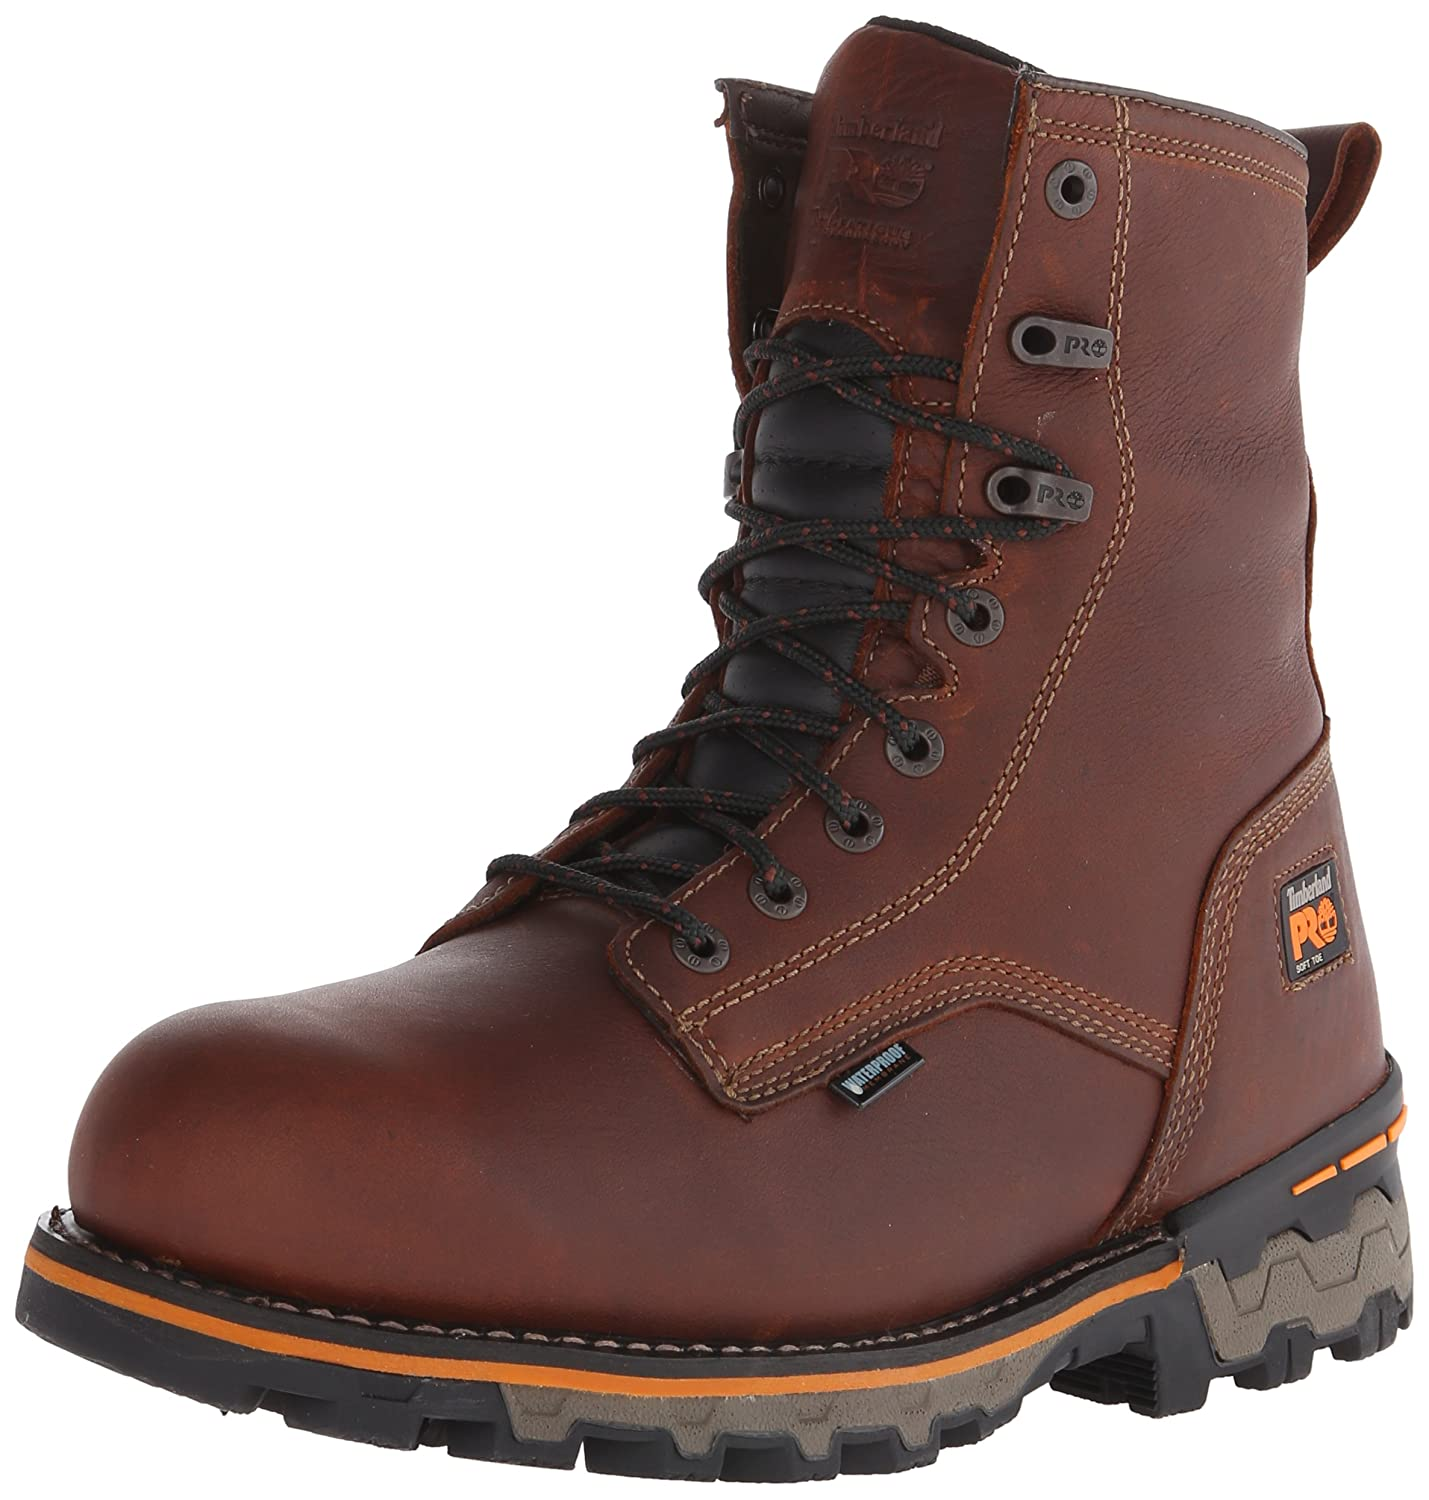 Timberland PRO Men's 8 Boondock Soft-Toe Waterproof Work and Hunt Boot